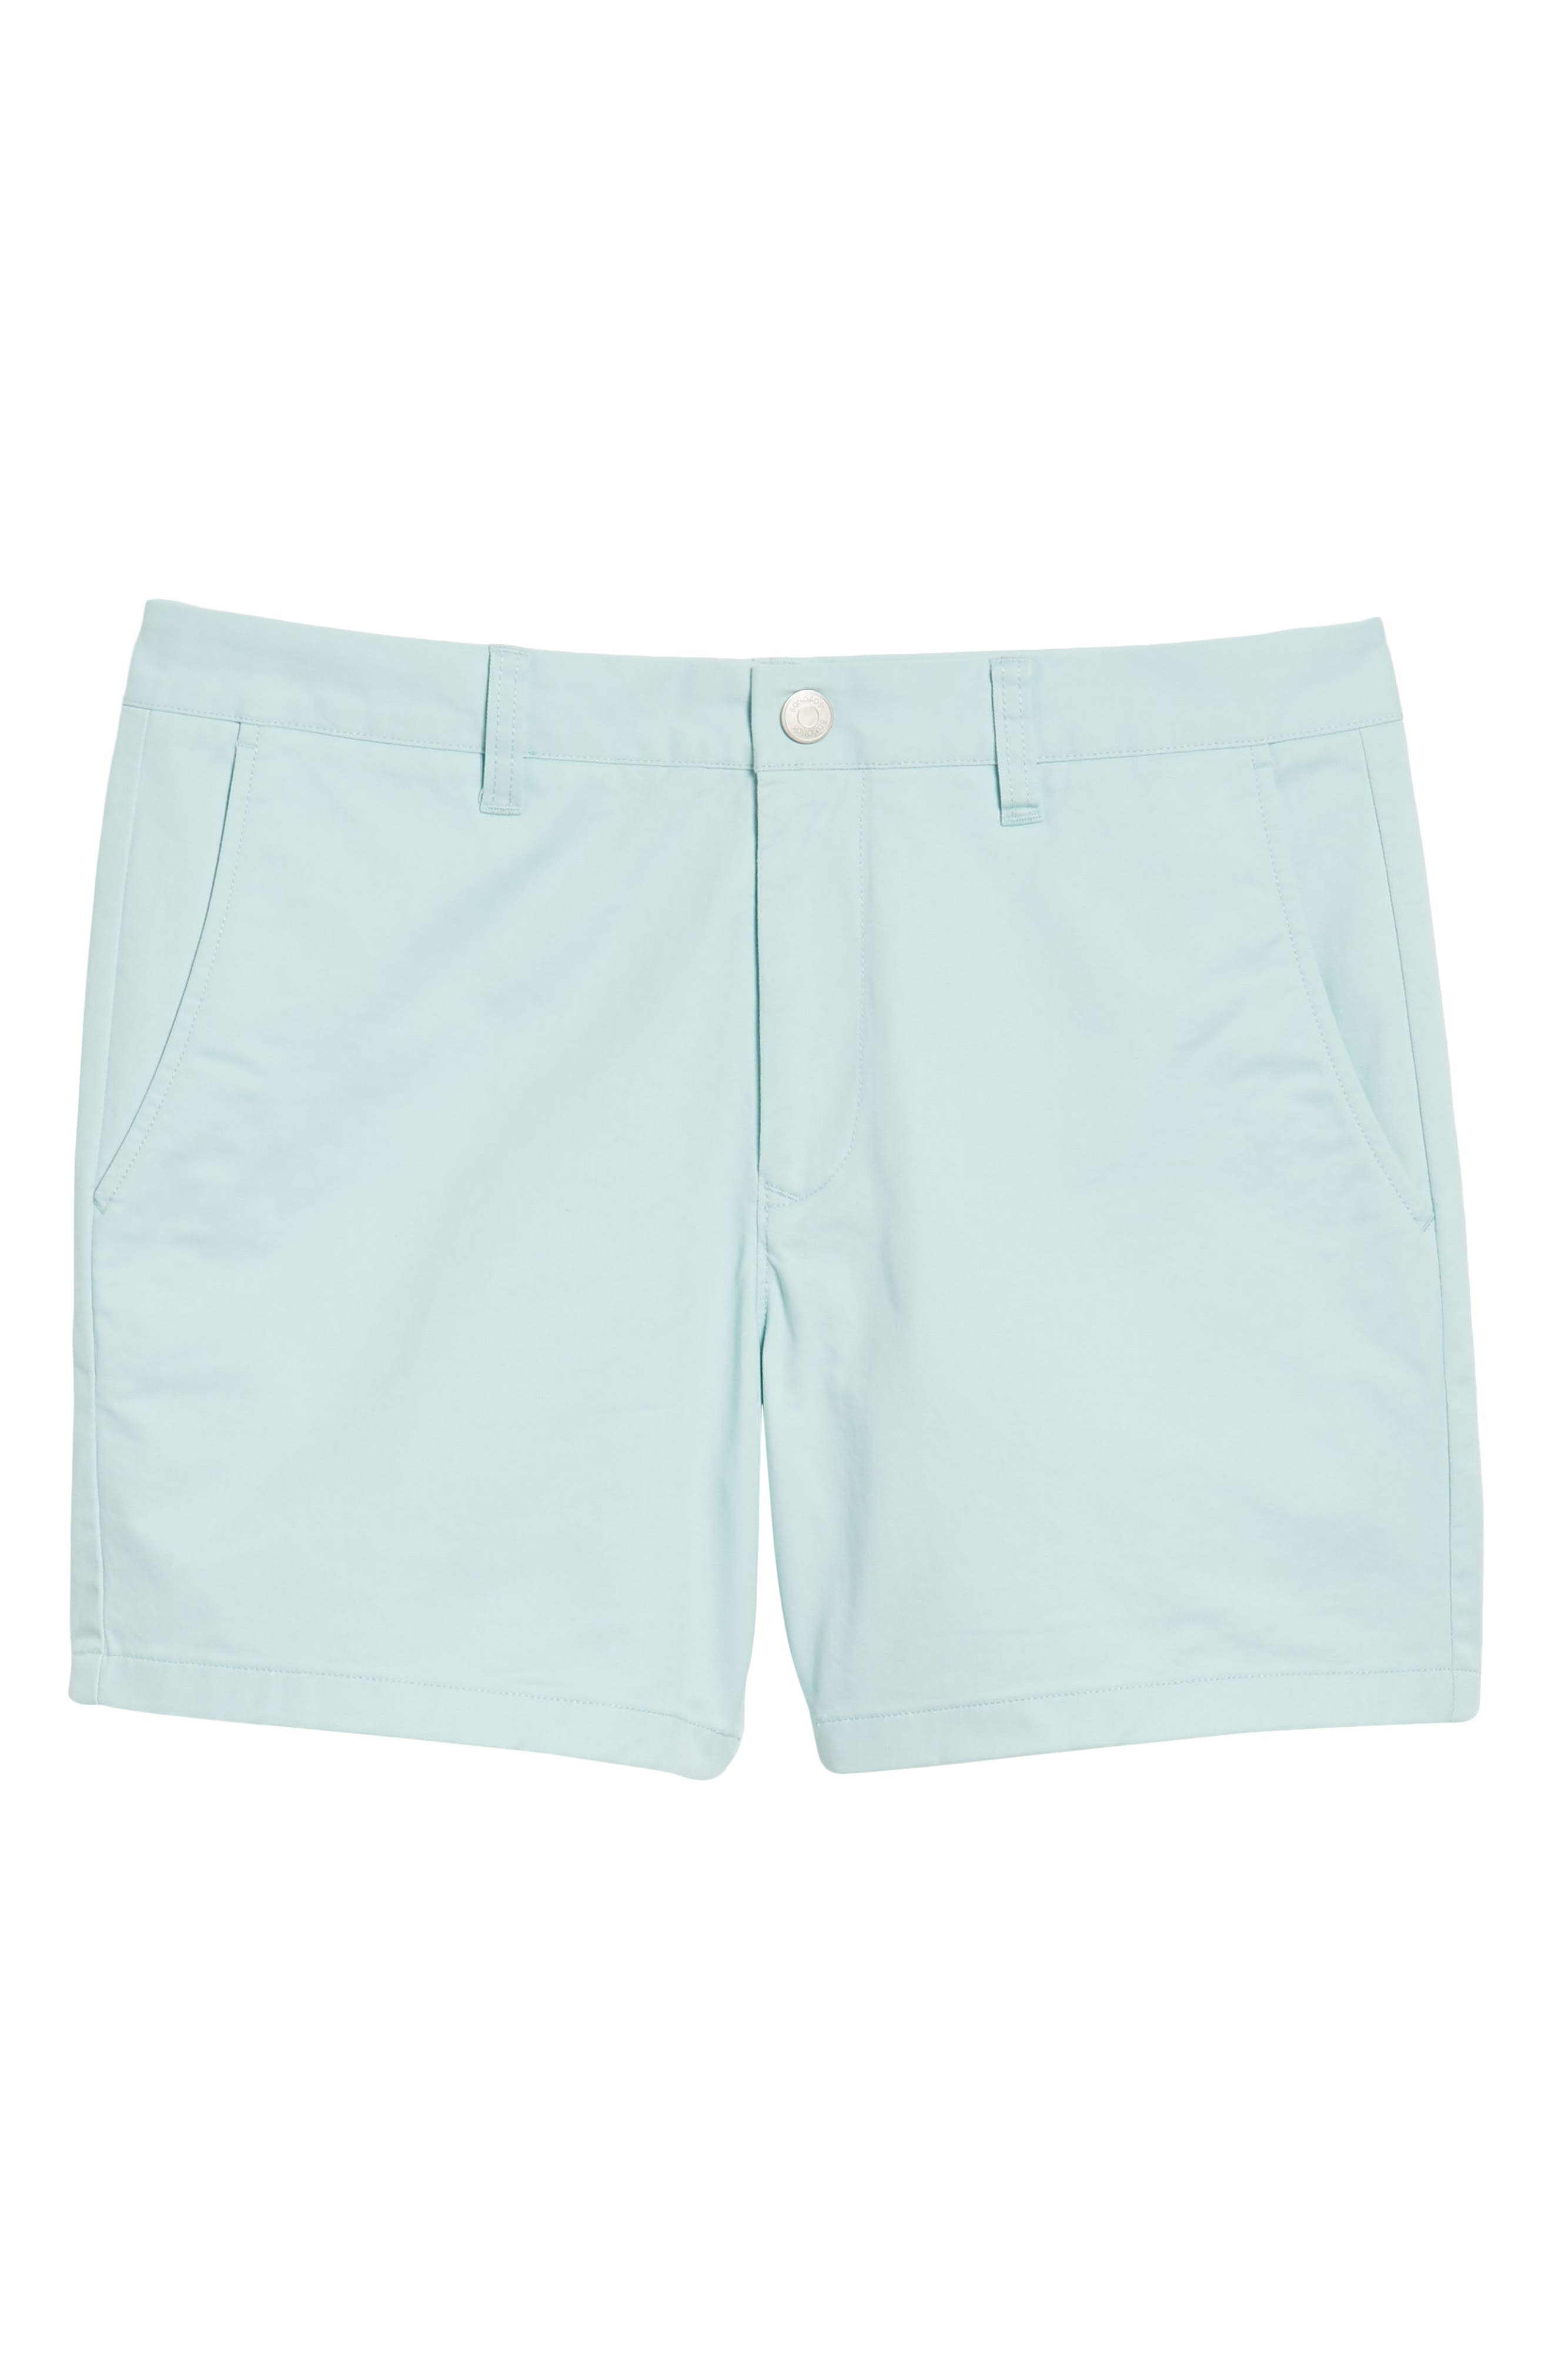 Stretch Washed Chino 5-Inch Shorts,                             Alternate thumbnail 146, color,